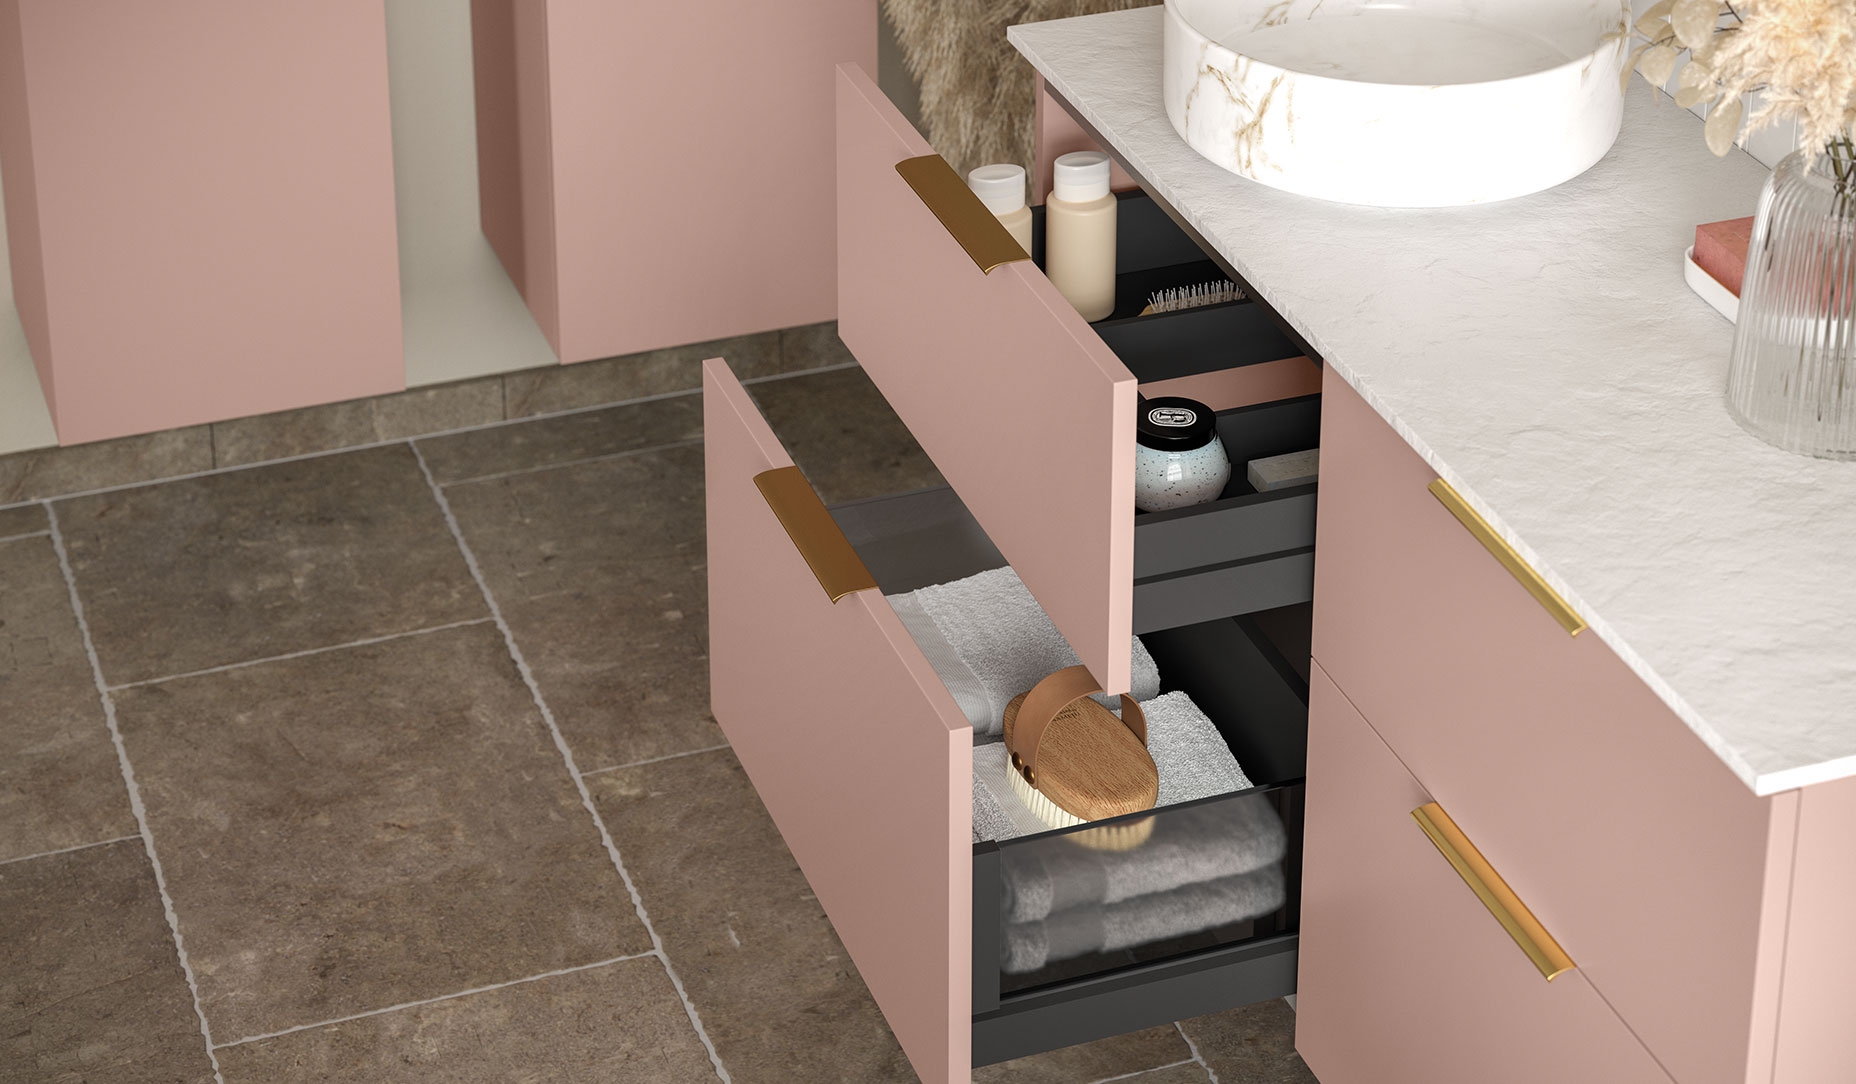 Perla push to open drawer with accessory pack